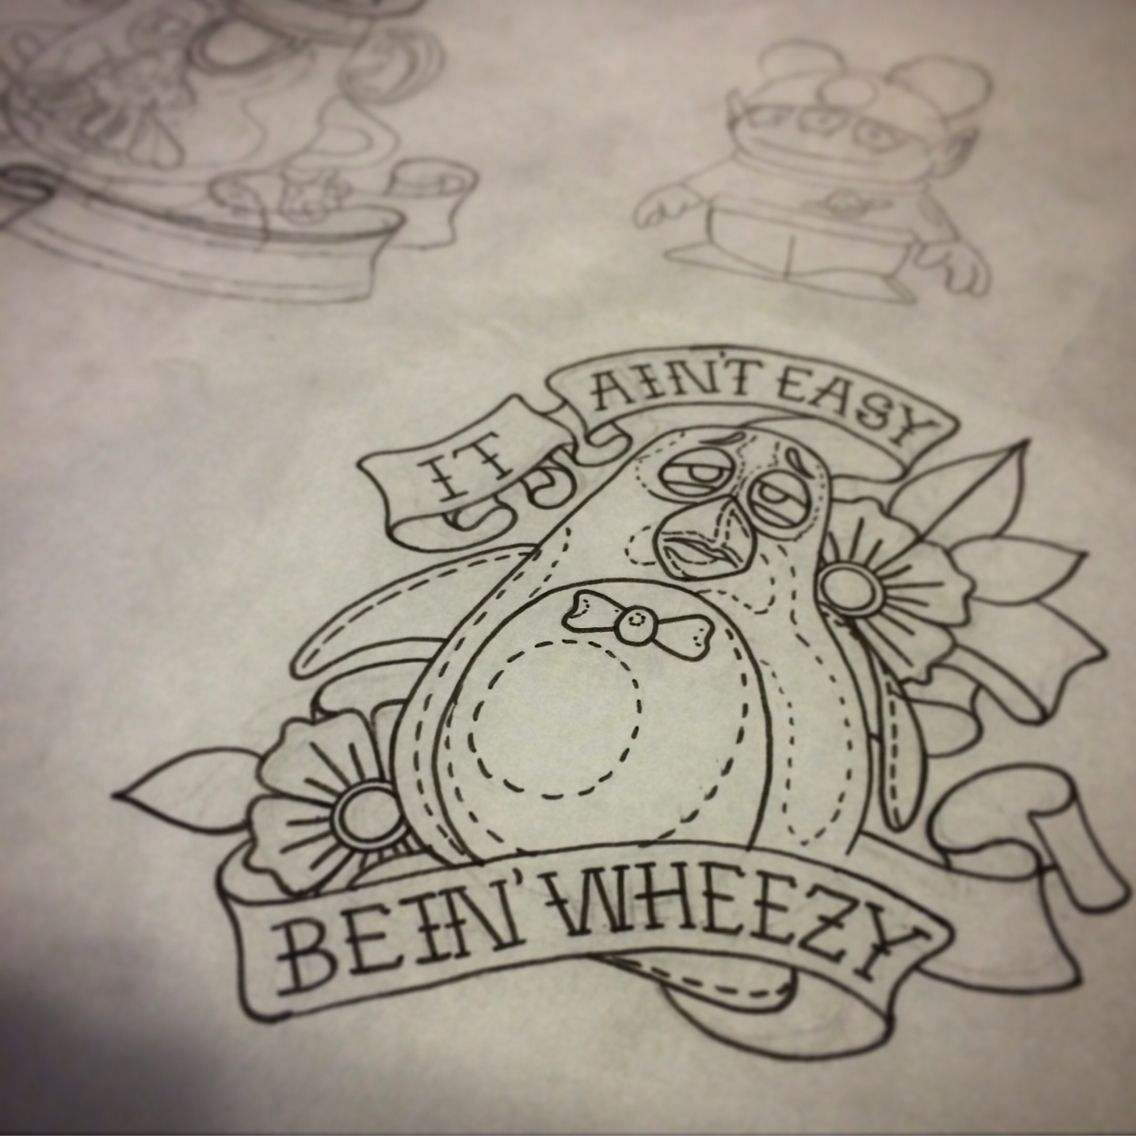 it ain 39 t easy bein wheezy toy story tattoo flash some more disney designs ready to go by matt. Black Bedroom Furniture Sets. Home Design Ideas